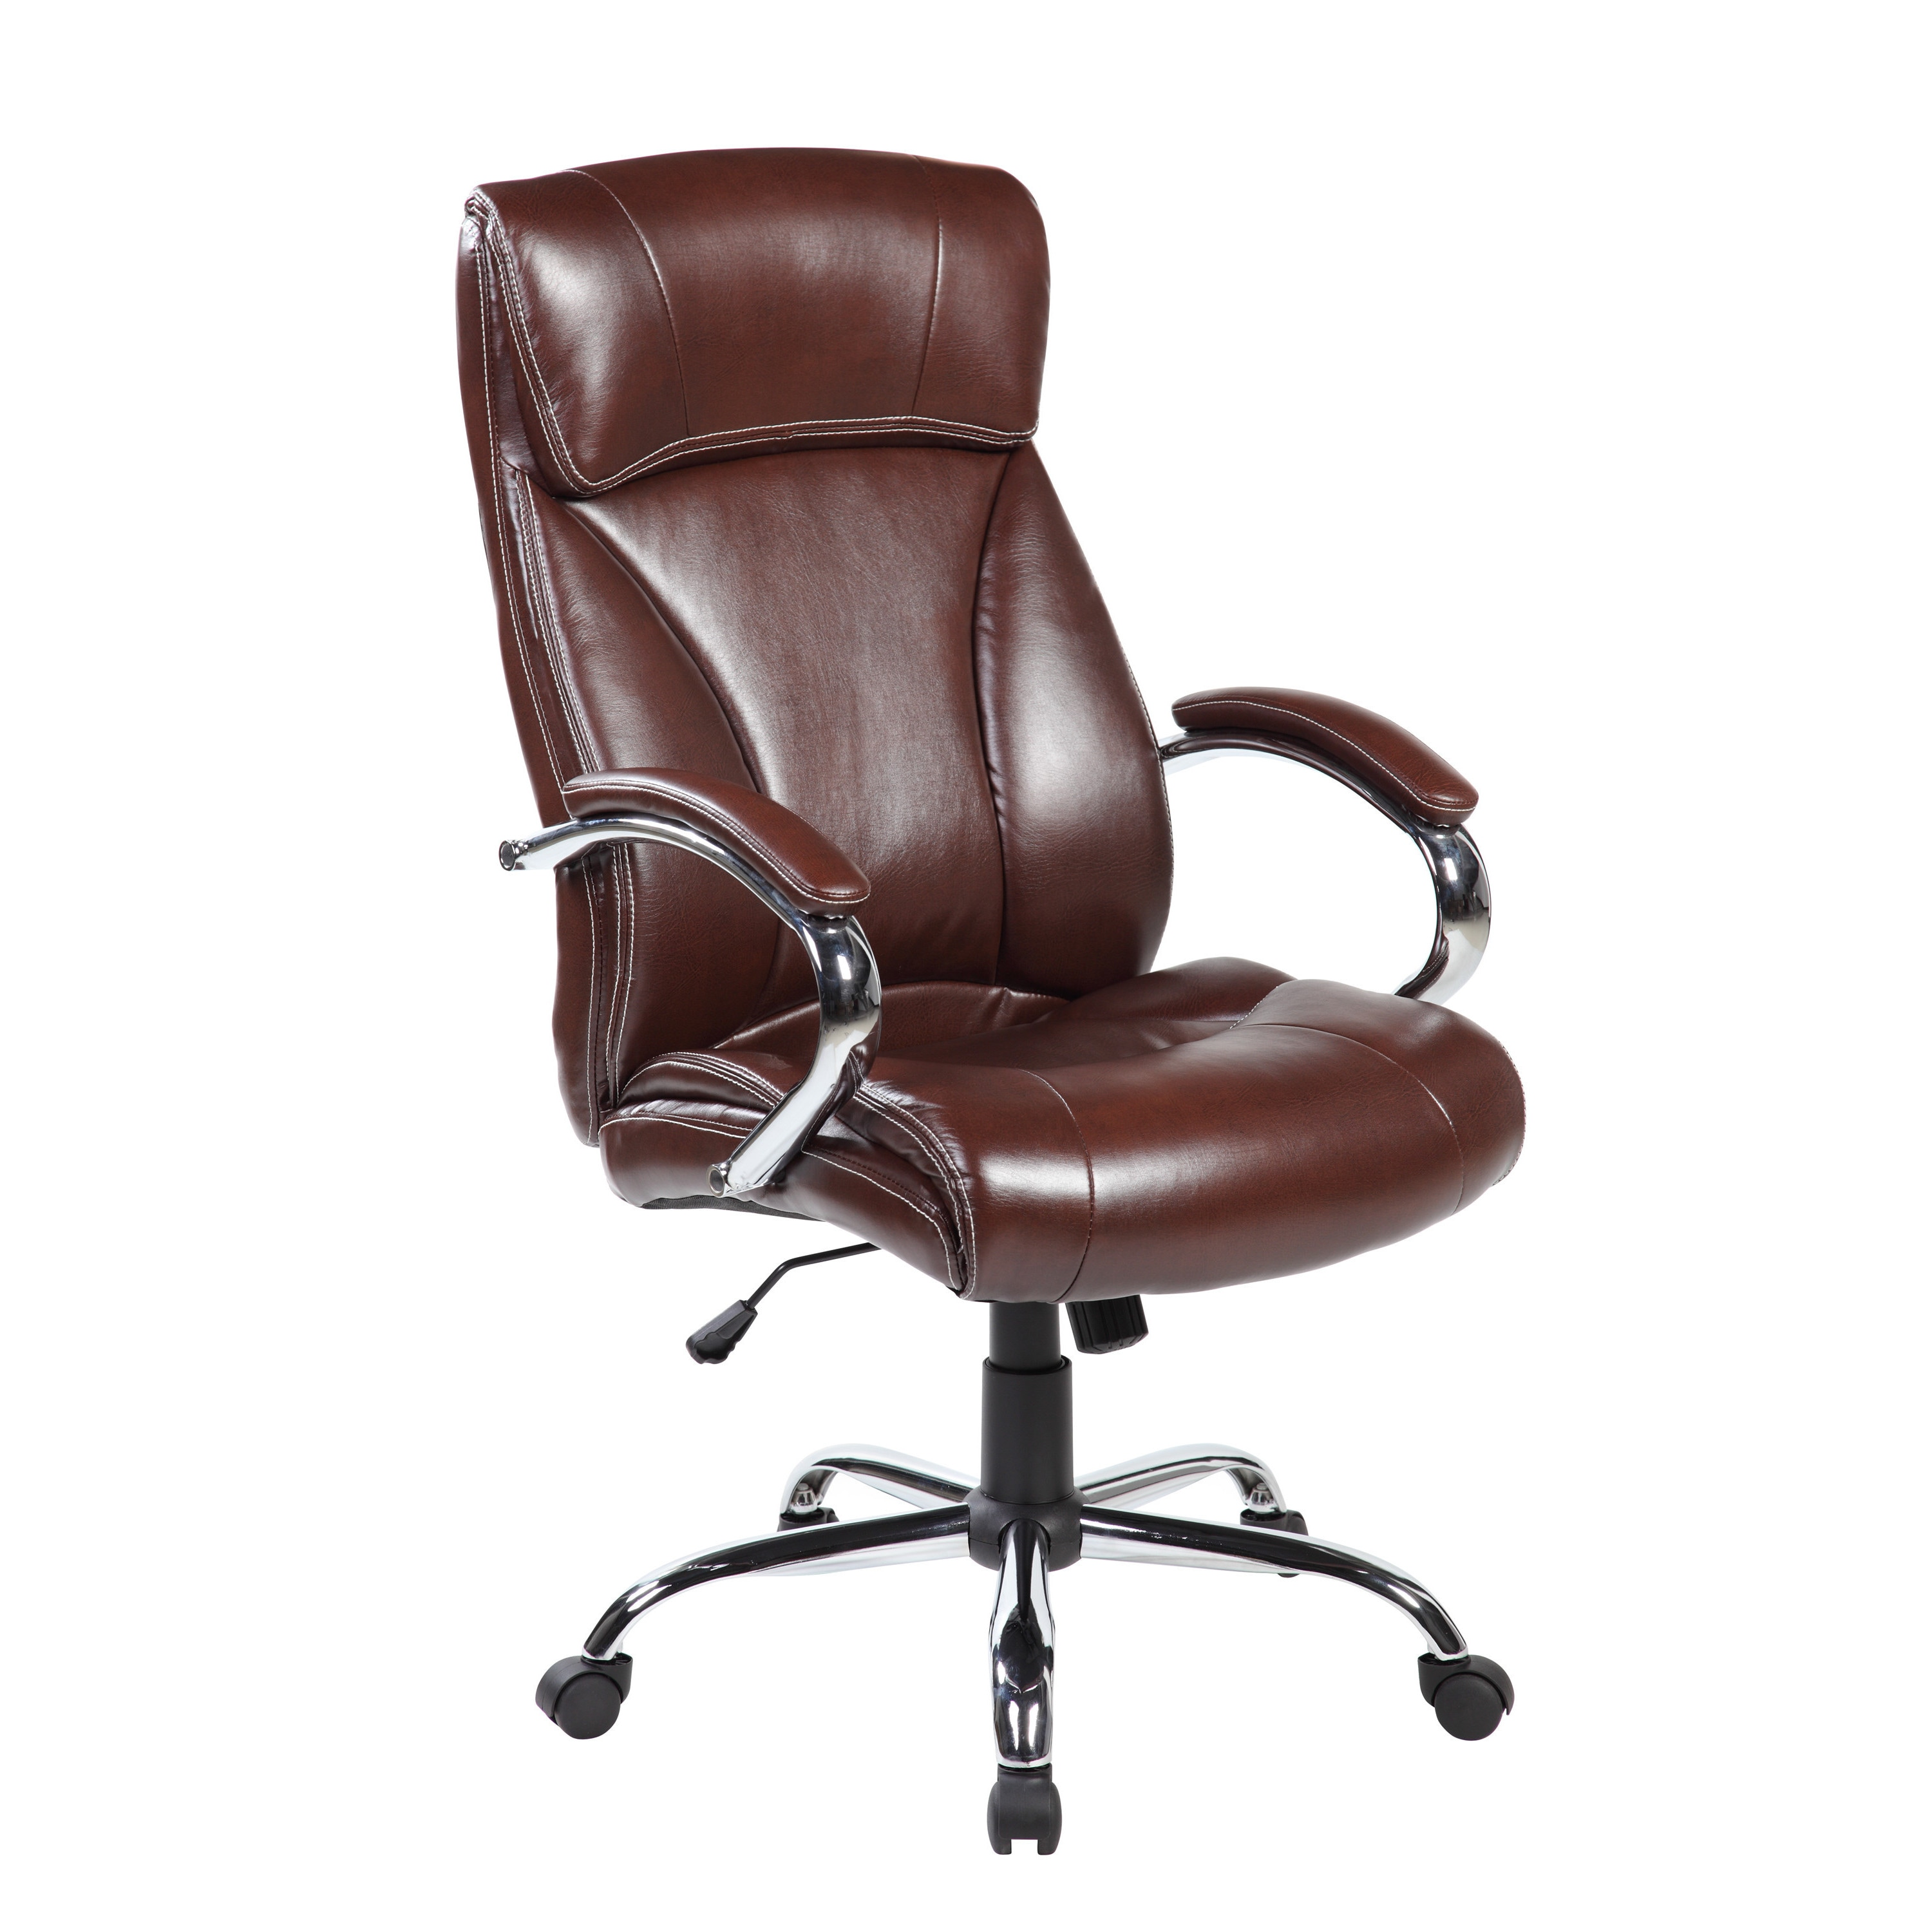 United Chair Industries LLC Brown Ergonomic High Back Leather Executive  Office Desk Chair